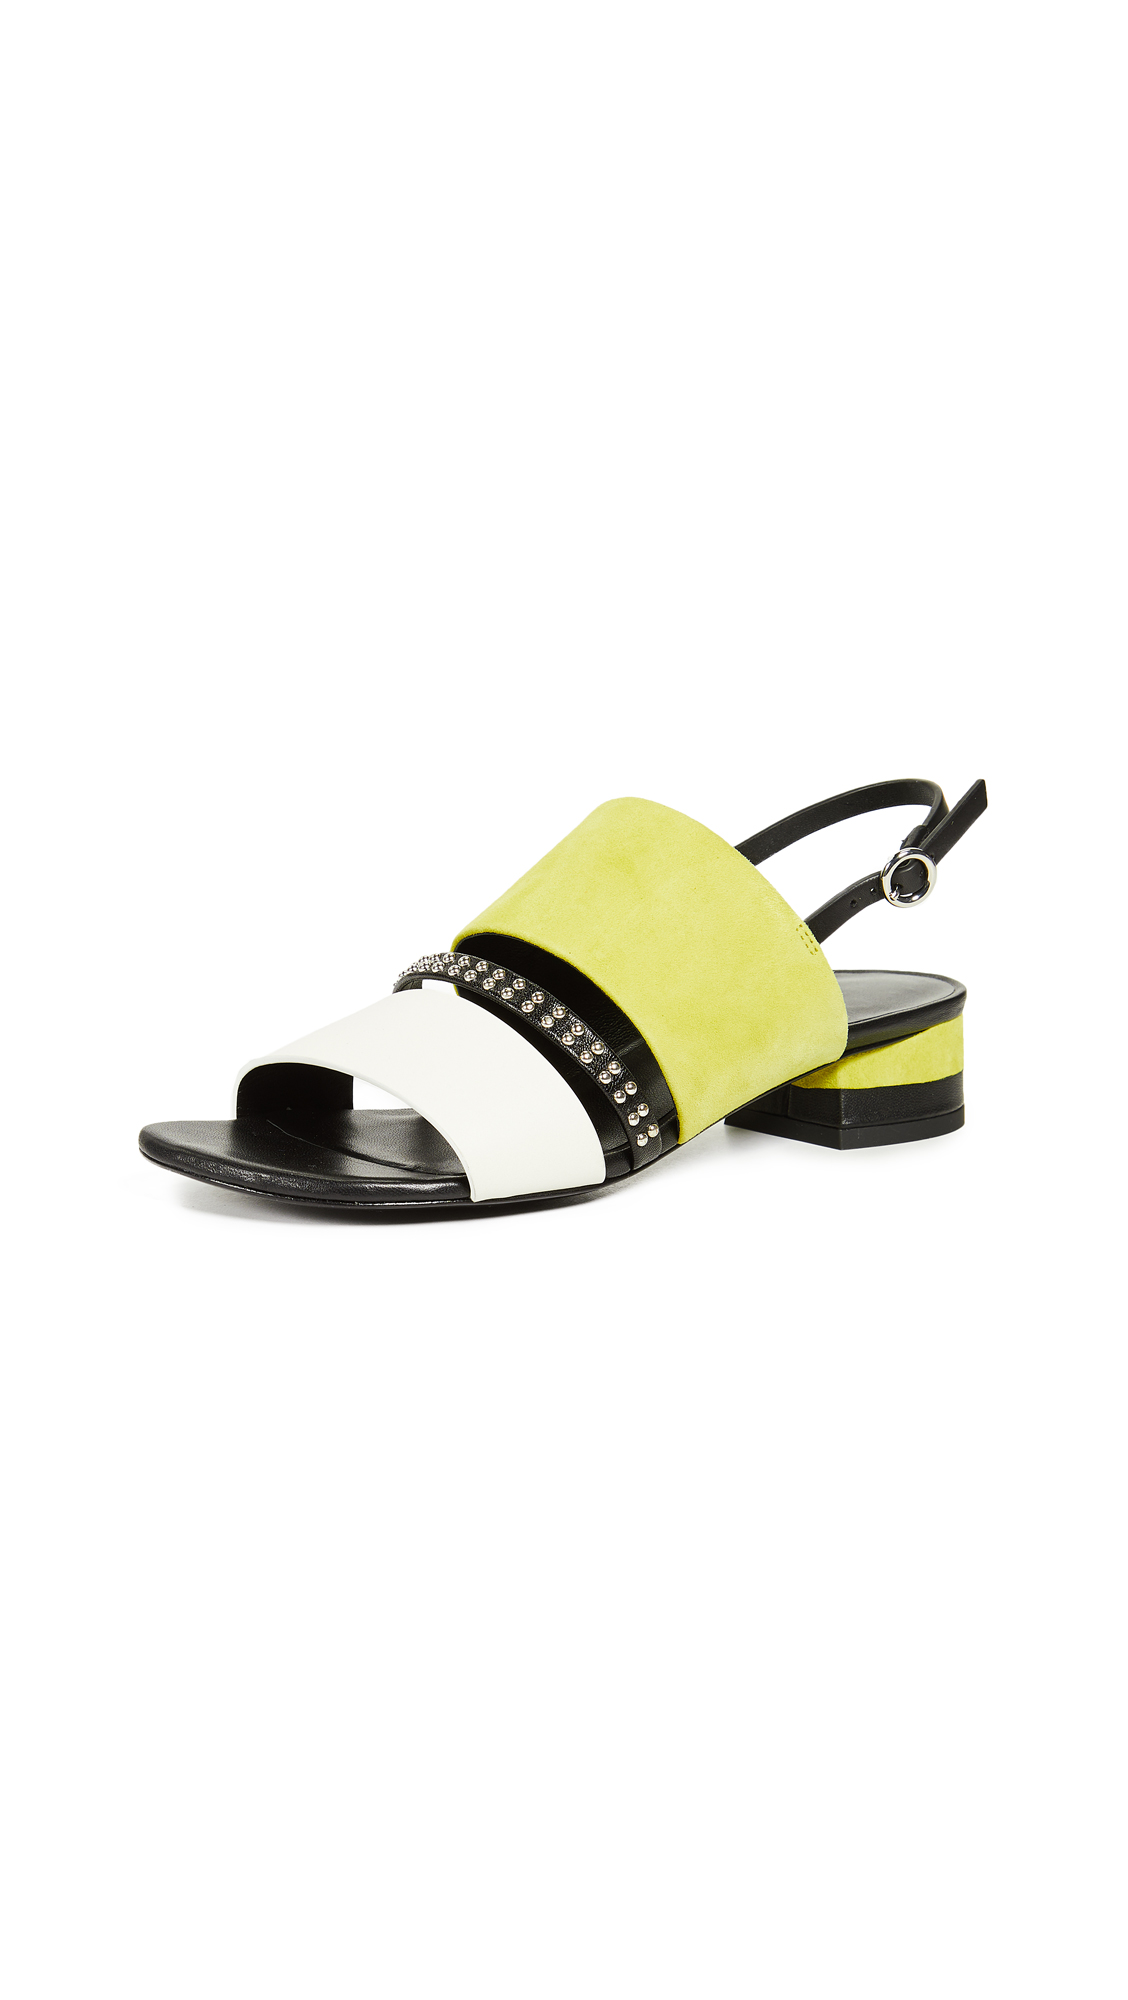 3.1 Phillip Lim Drum 30mm Studded Sandals - Citron Multi